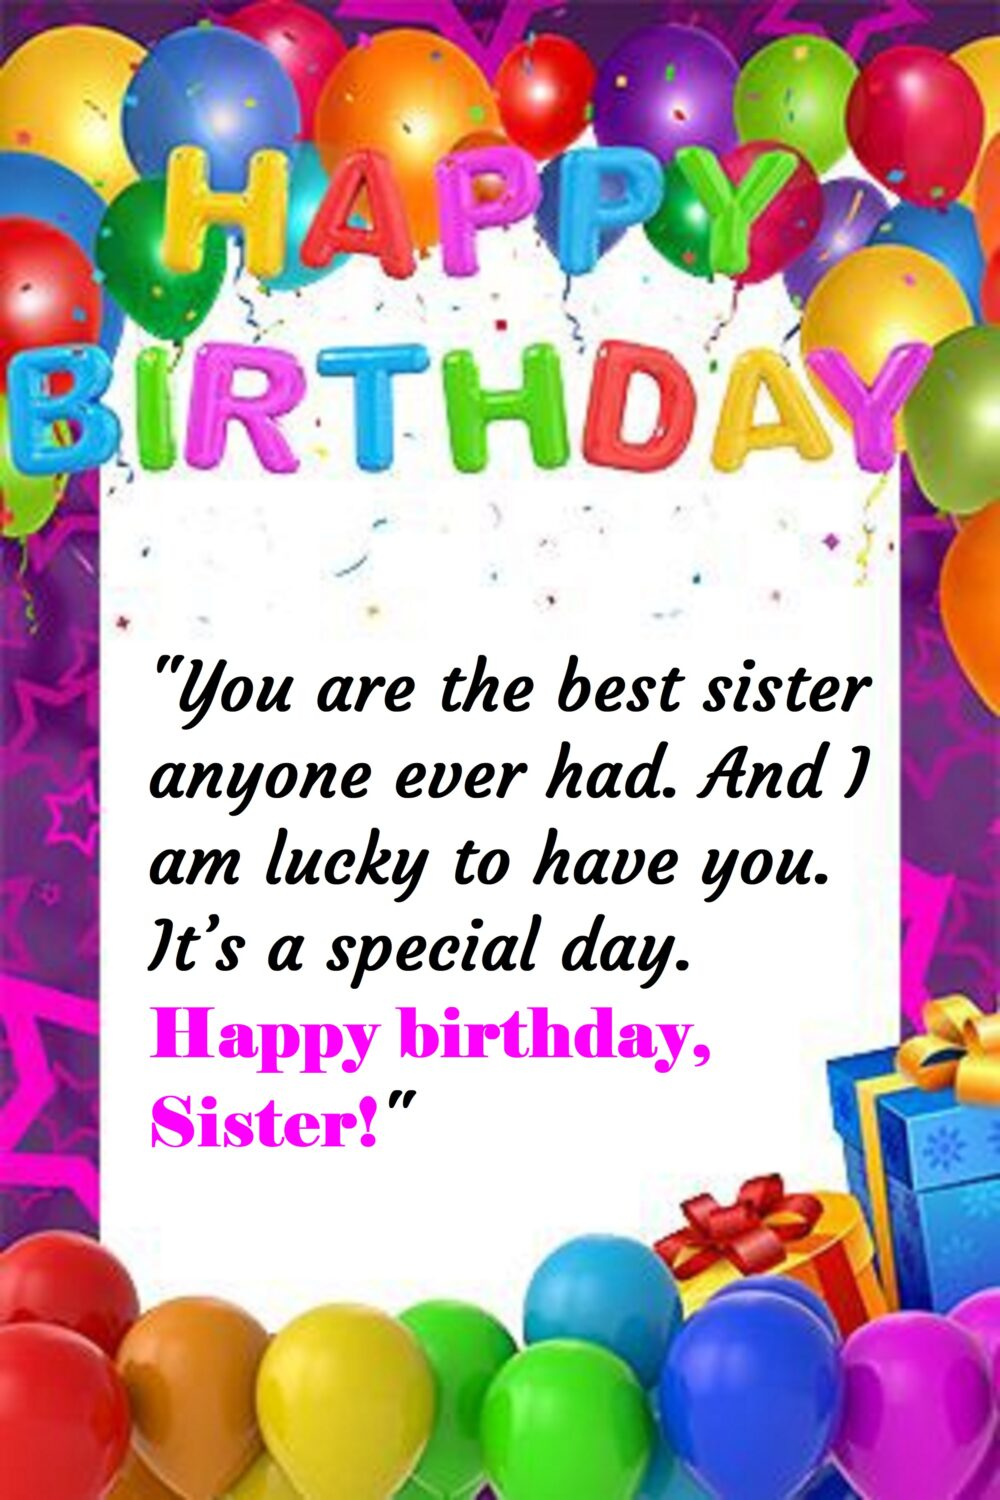 White poster with balloons gift boxes and happy birthday banner, Birthday wishes for sister.